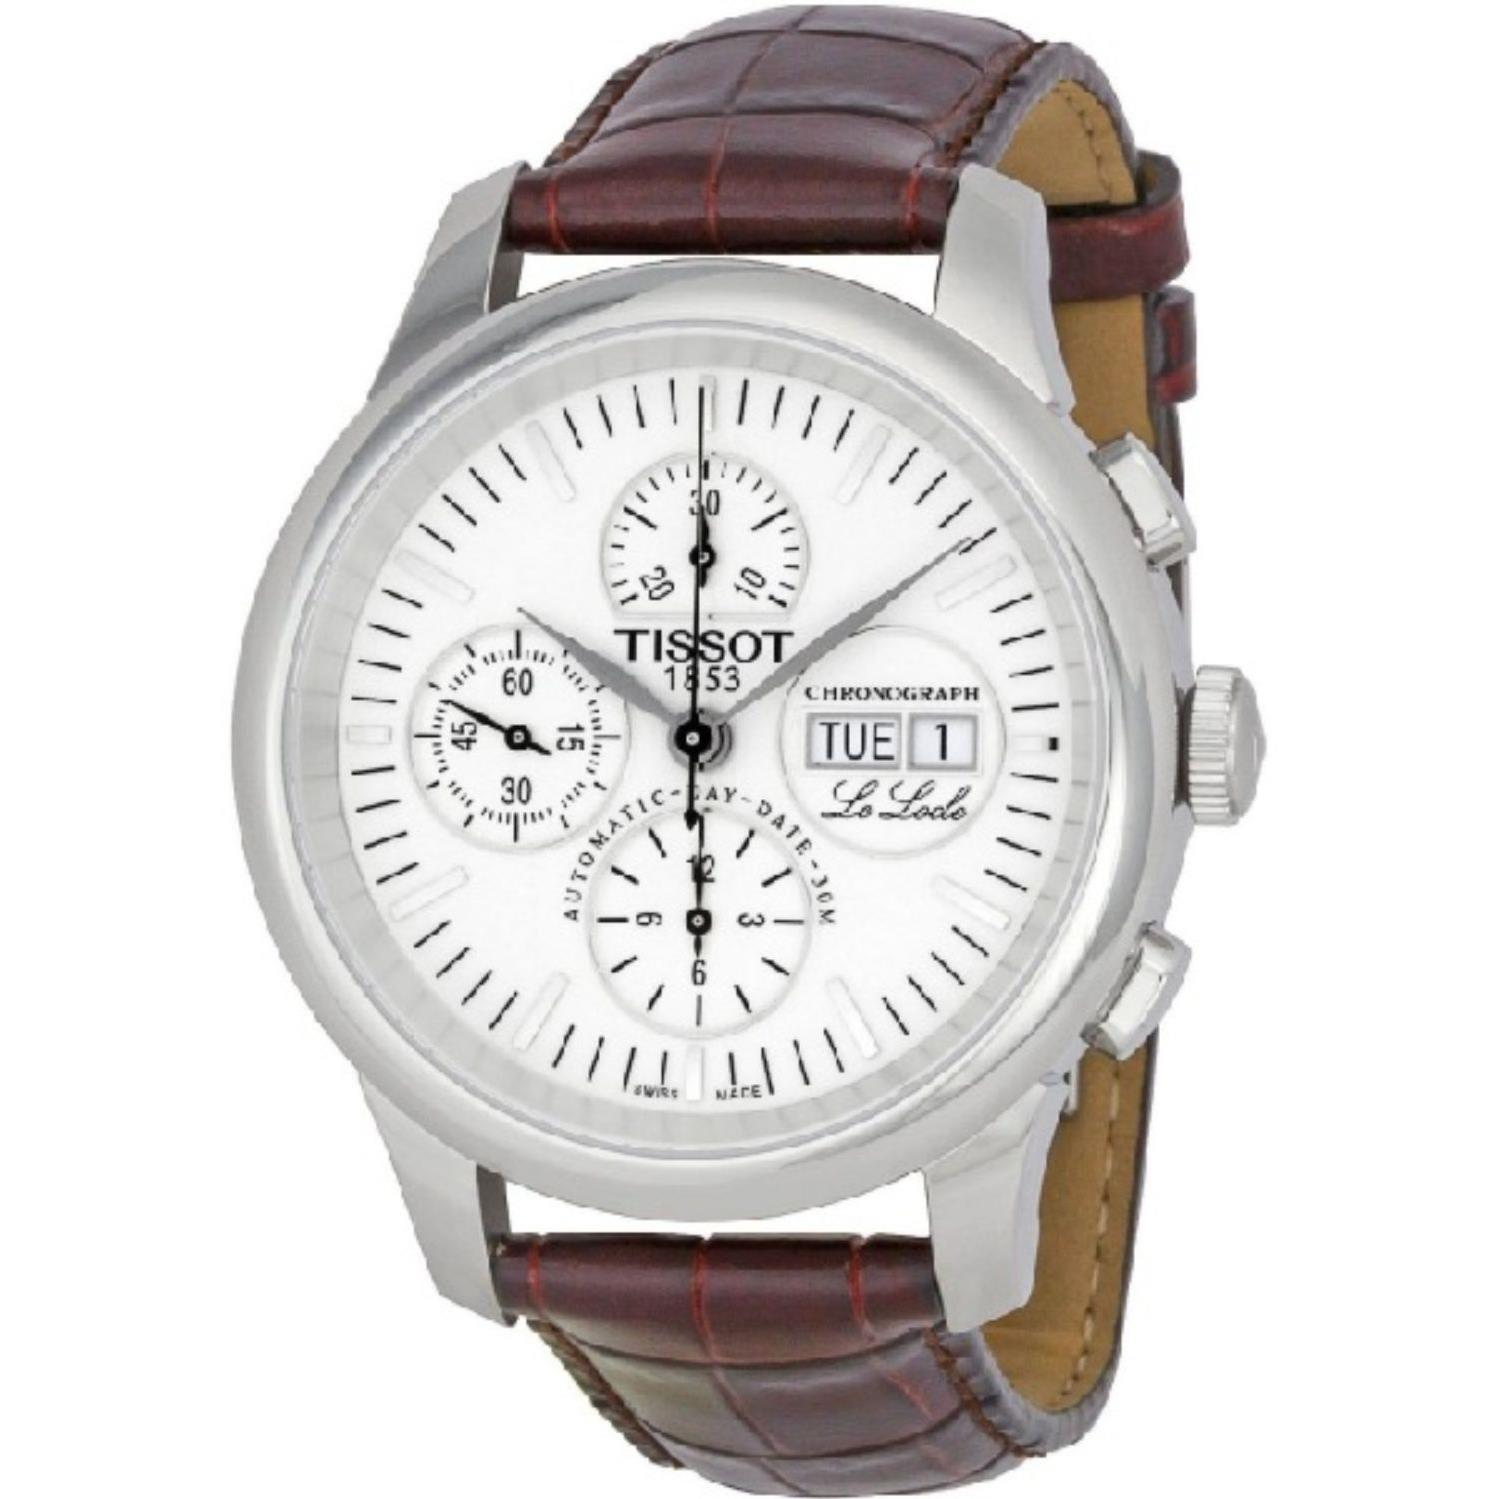 Tissot Men's Le Locle Brown Leather Band Steel Case Automatic White Dial Analog Watch T41.1.317.31